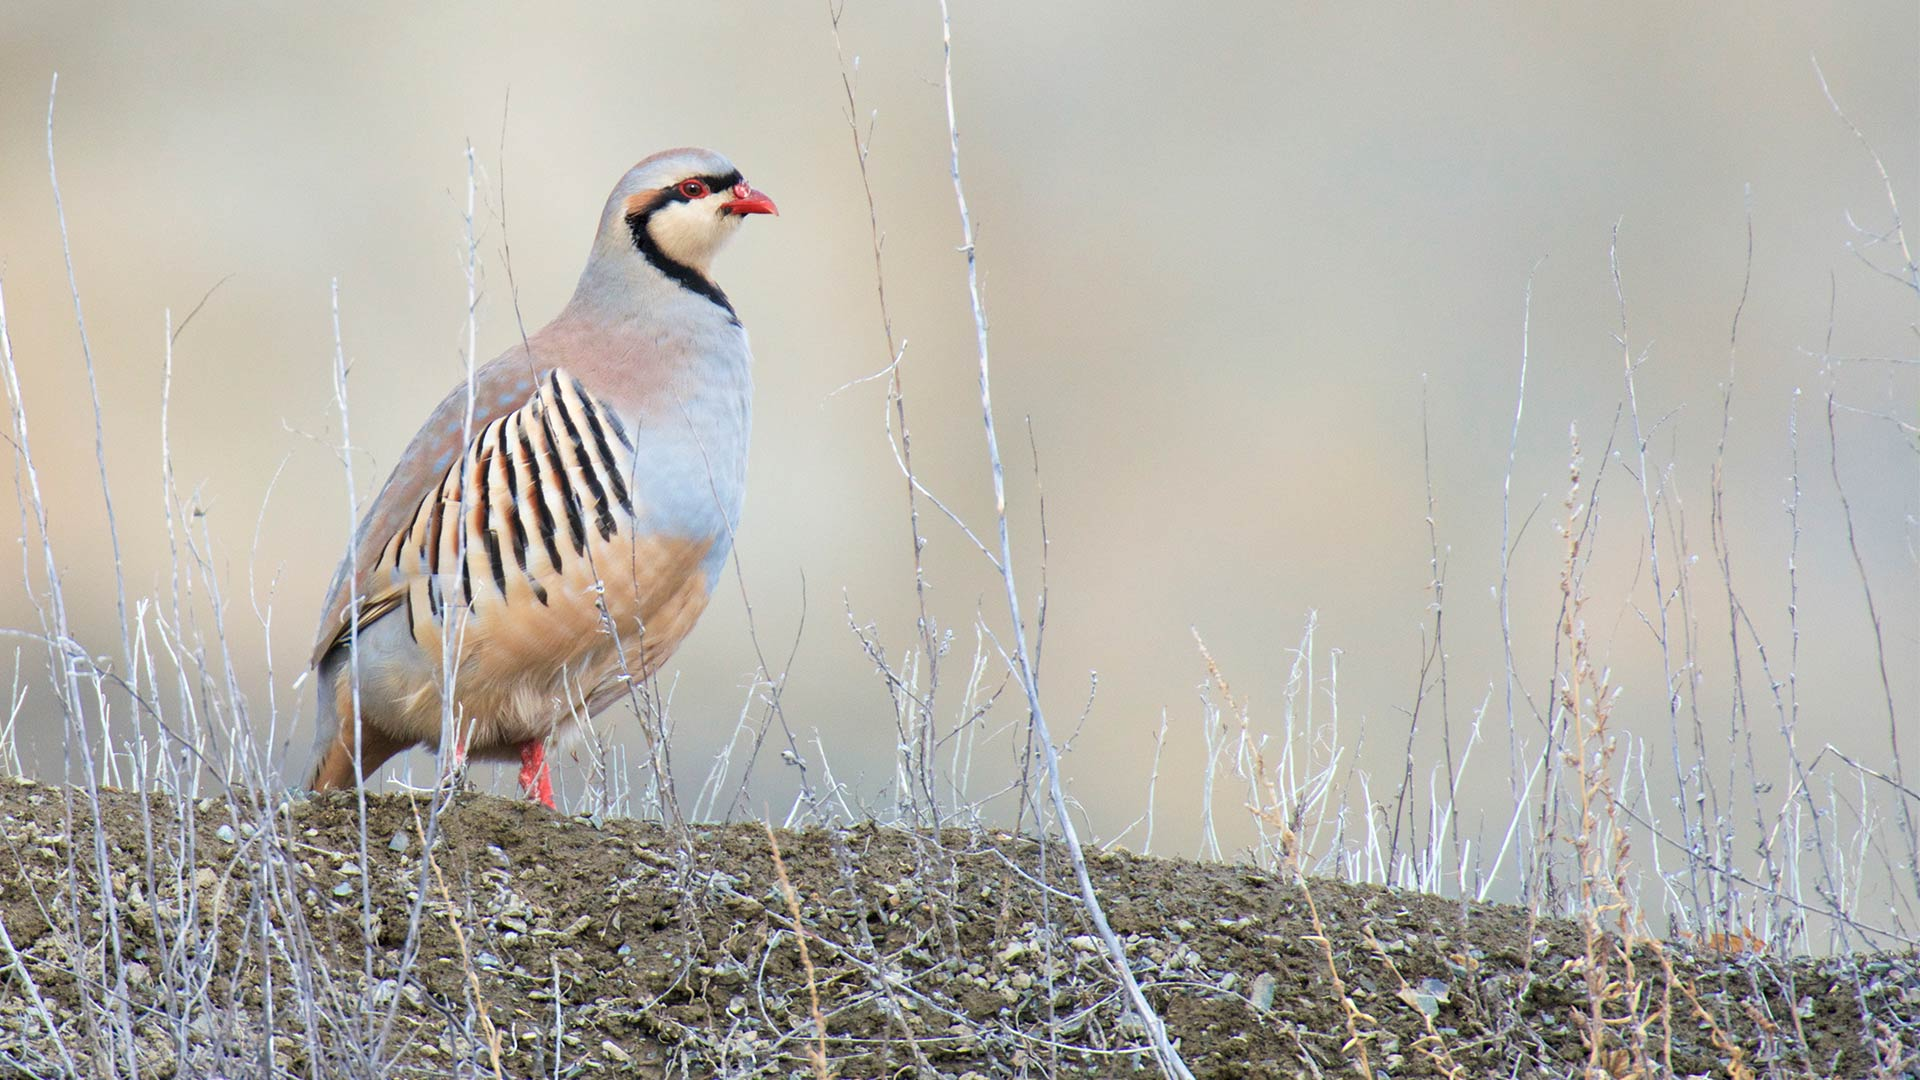 Chukar partridge in Mongolia